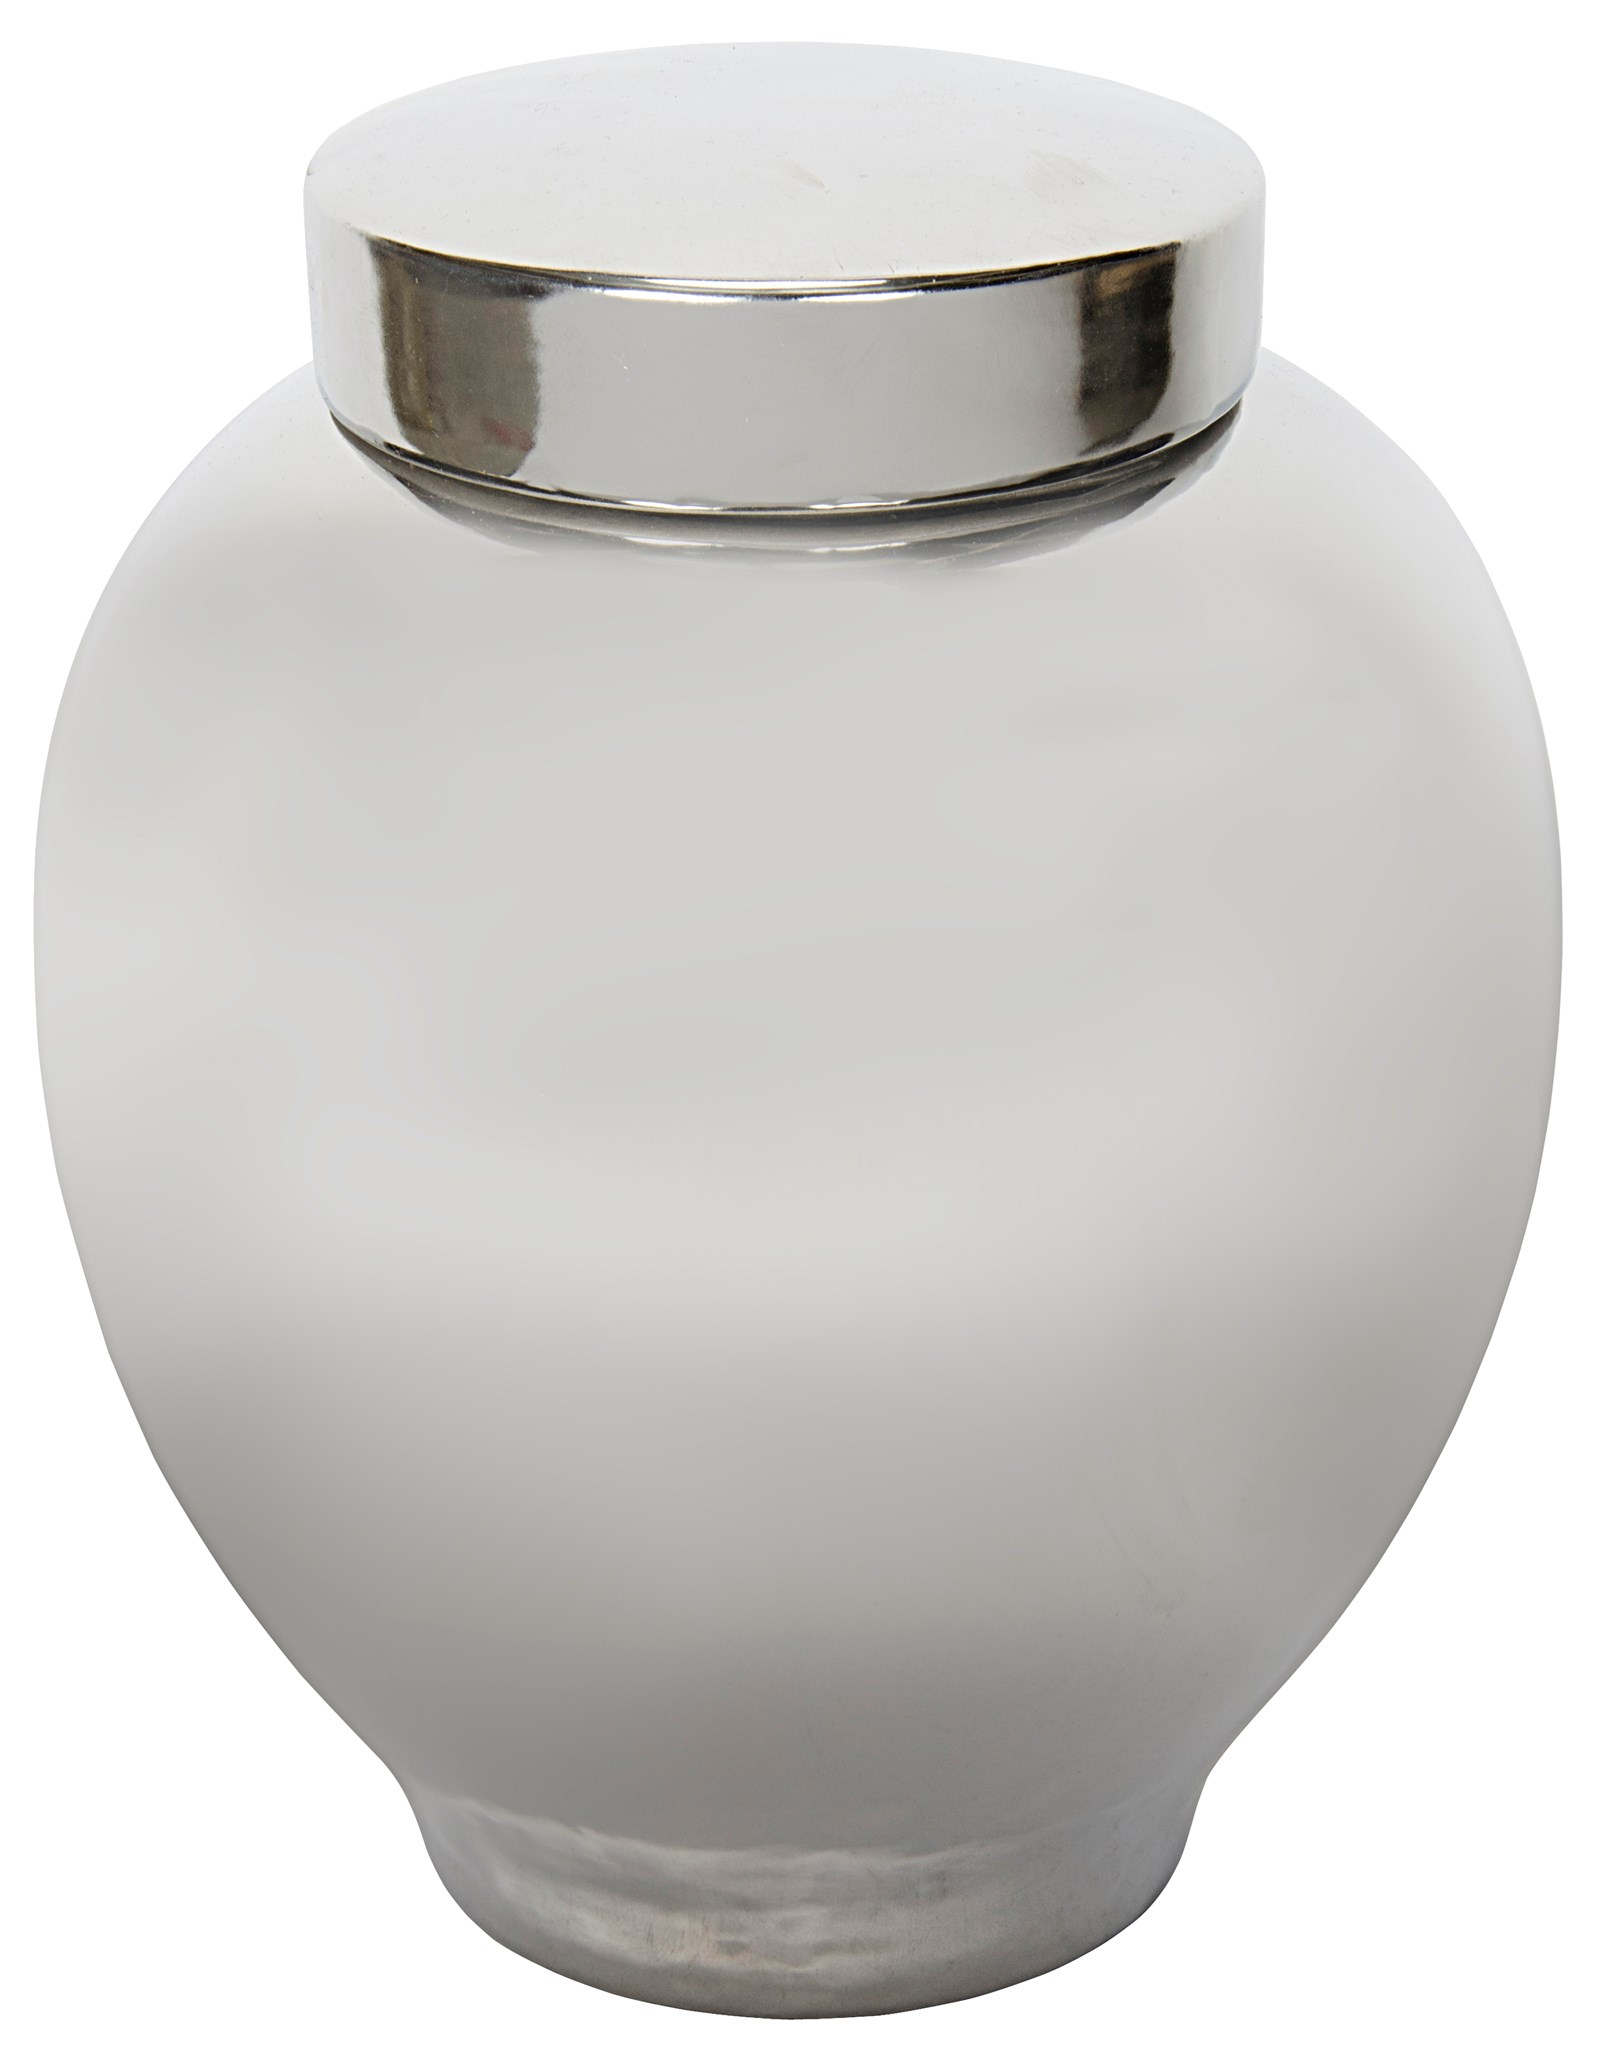 120 ceramic vase with lid silver finish fedex items download image reviewsmspy